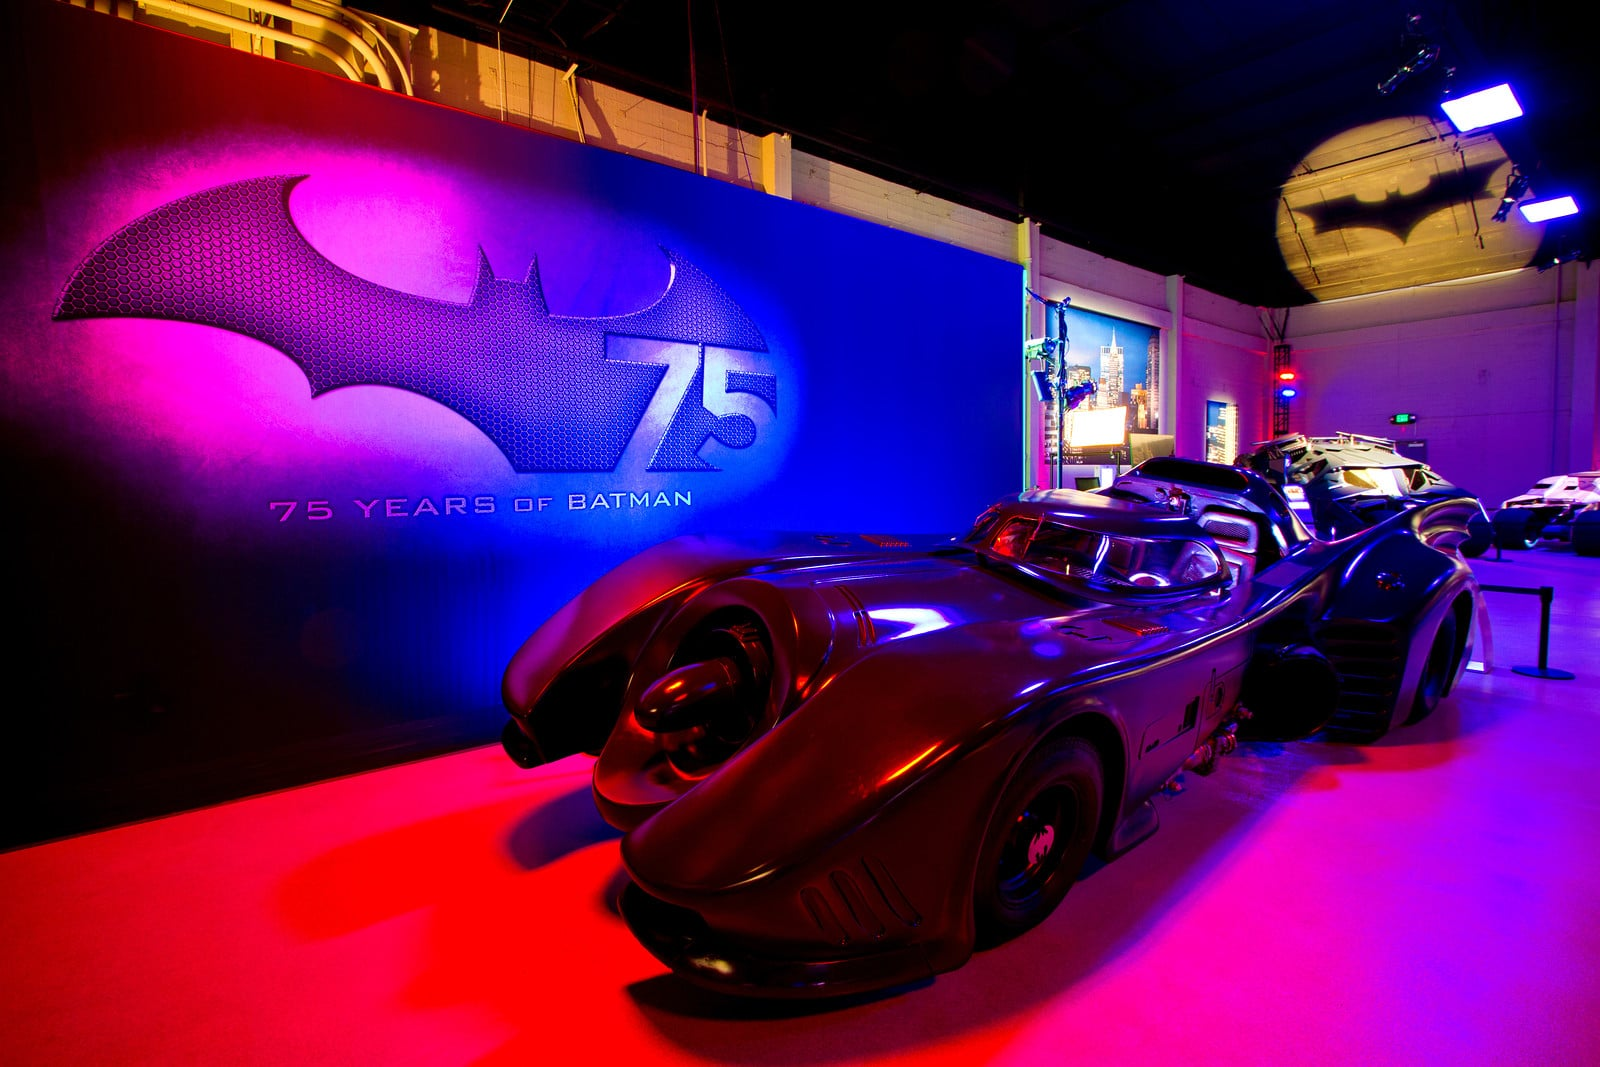 Batman 75th Anniversary Exhibit